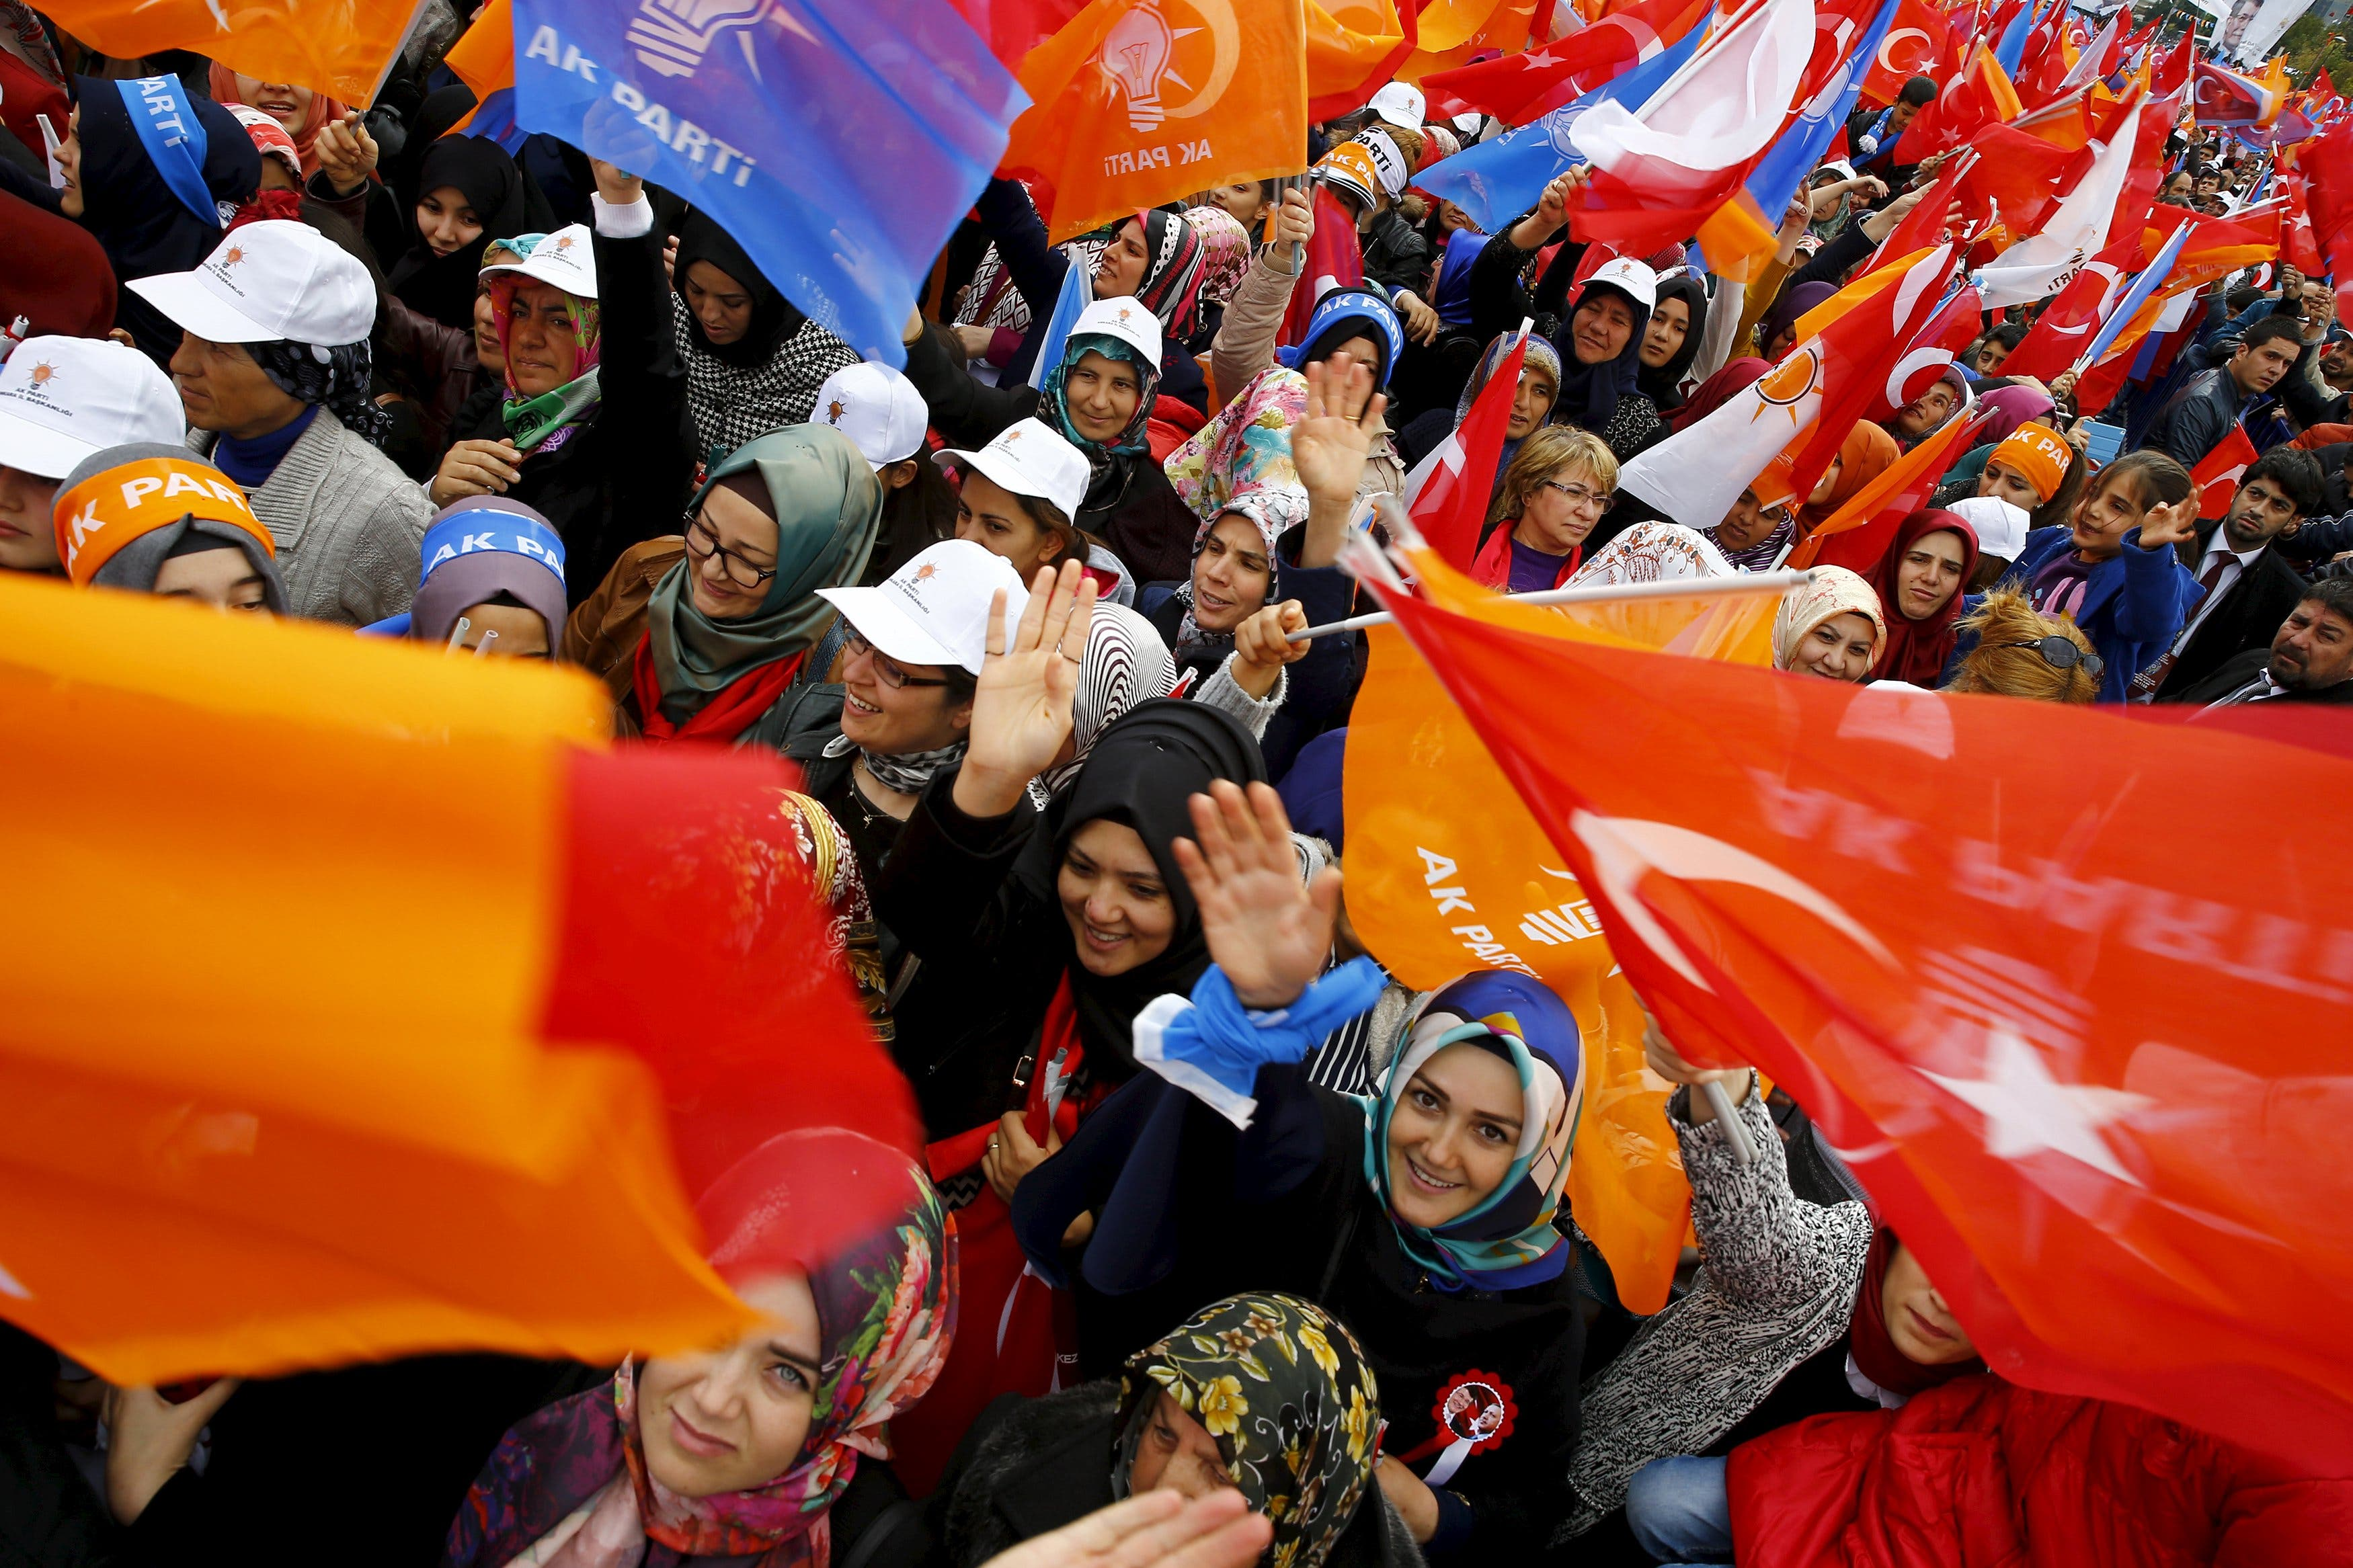 Supporters of the ruling AK Party wave national and party flags during an election rally in Ankara, Turkey, October 31, 2015